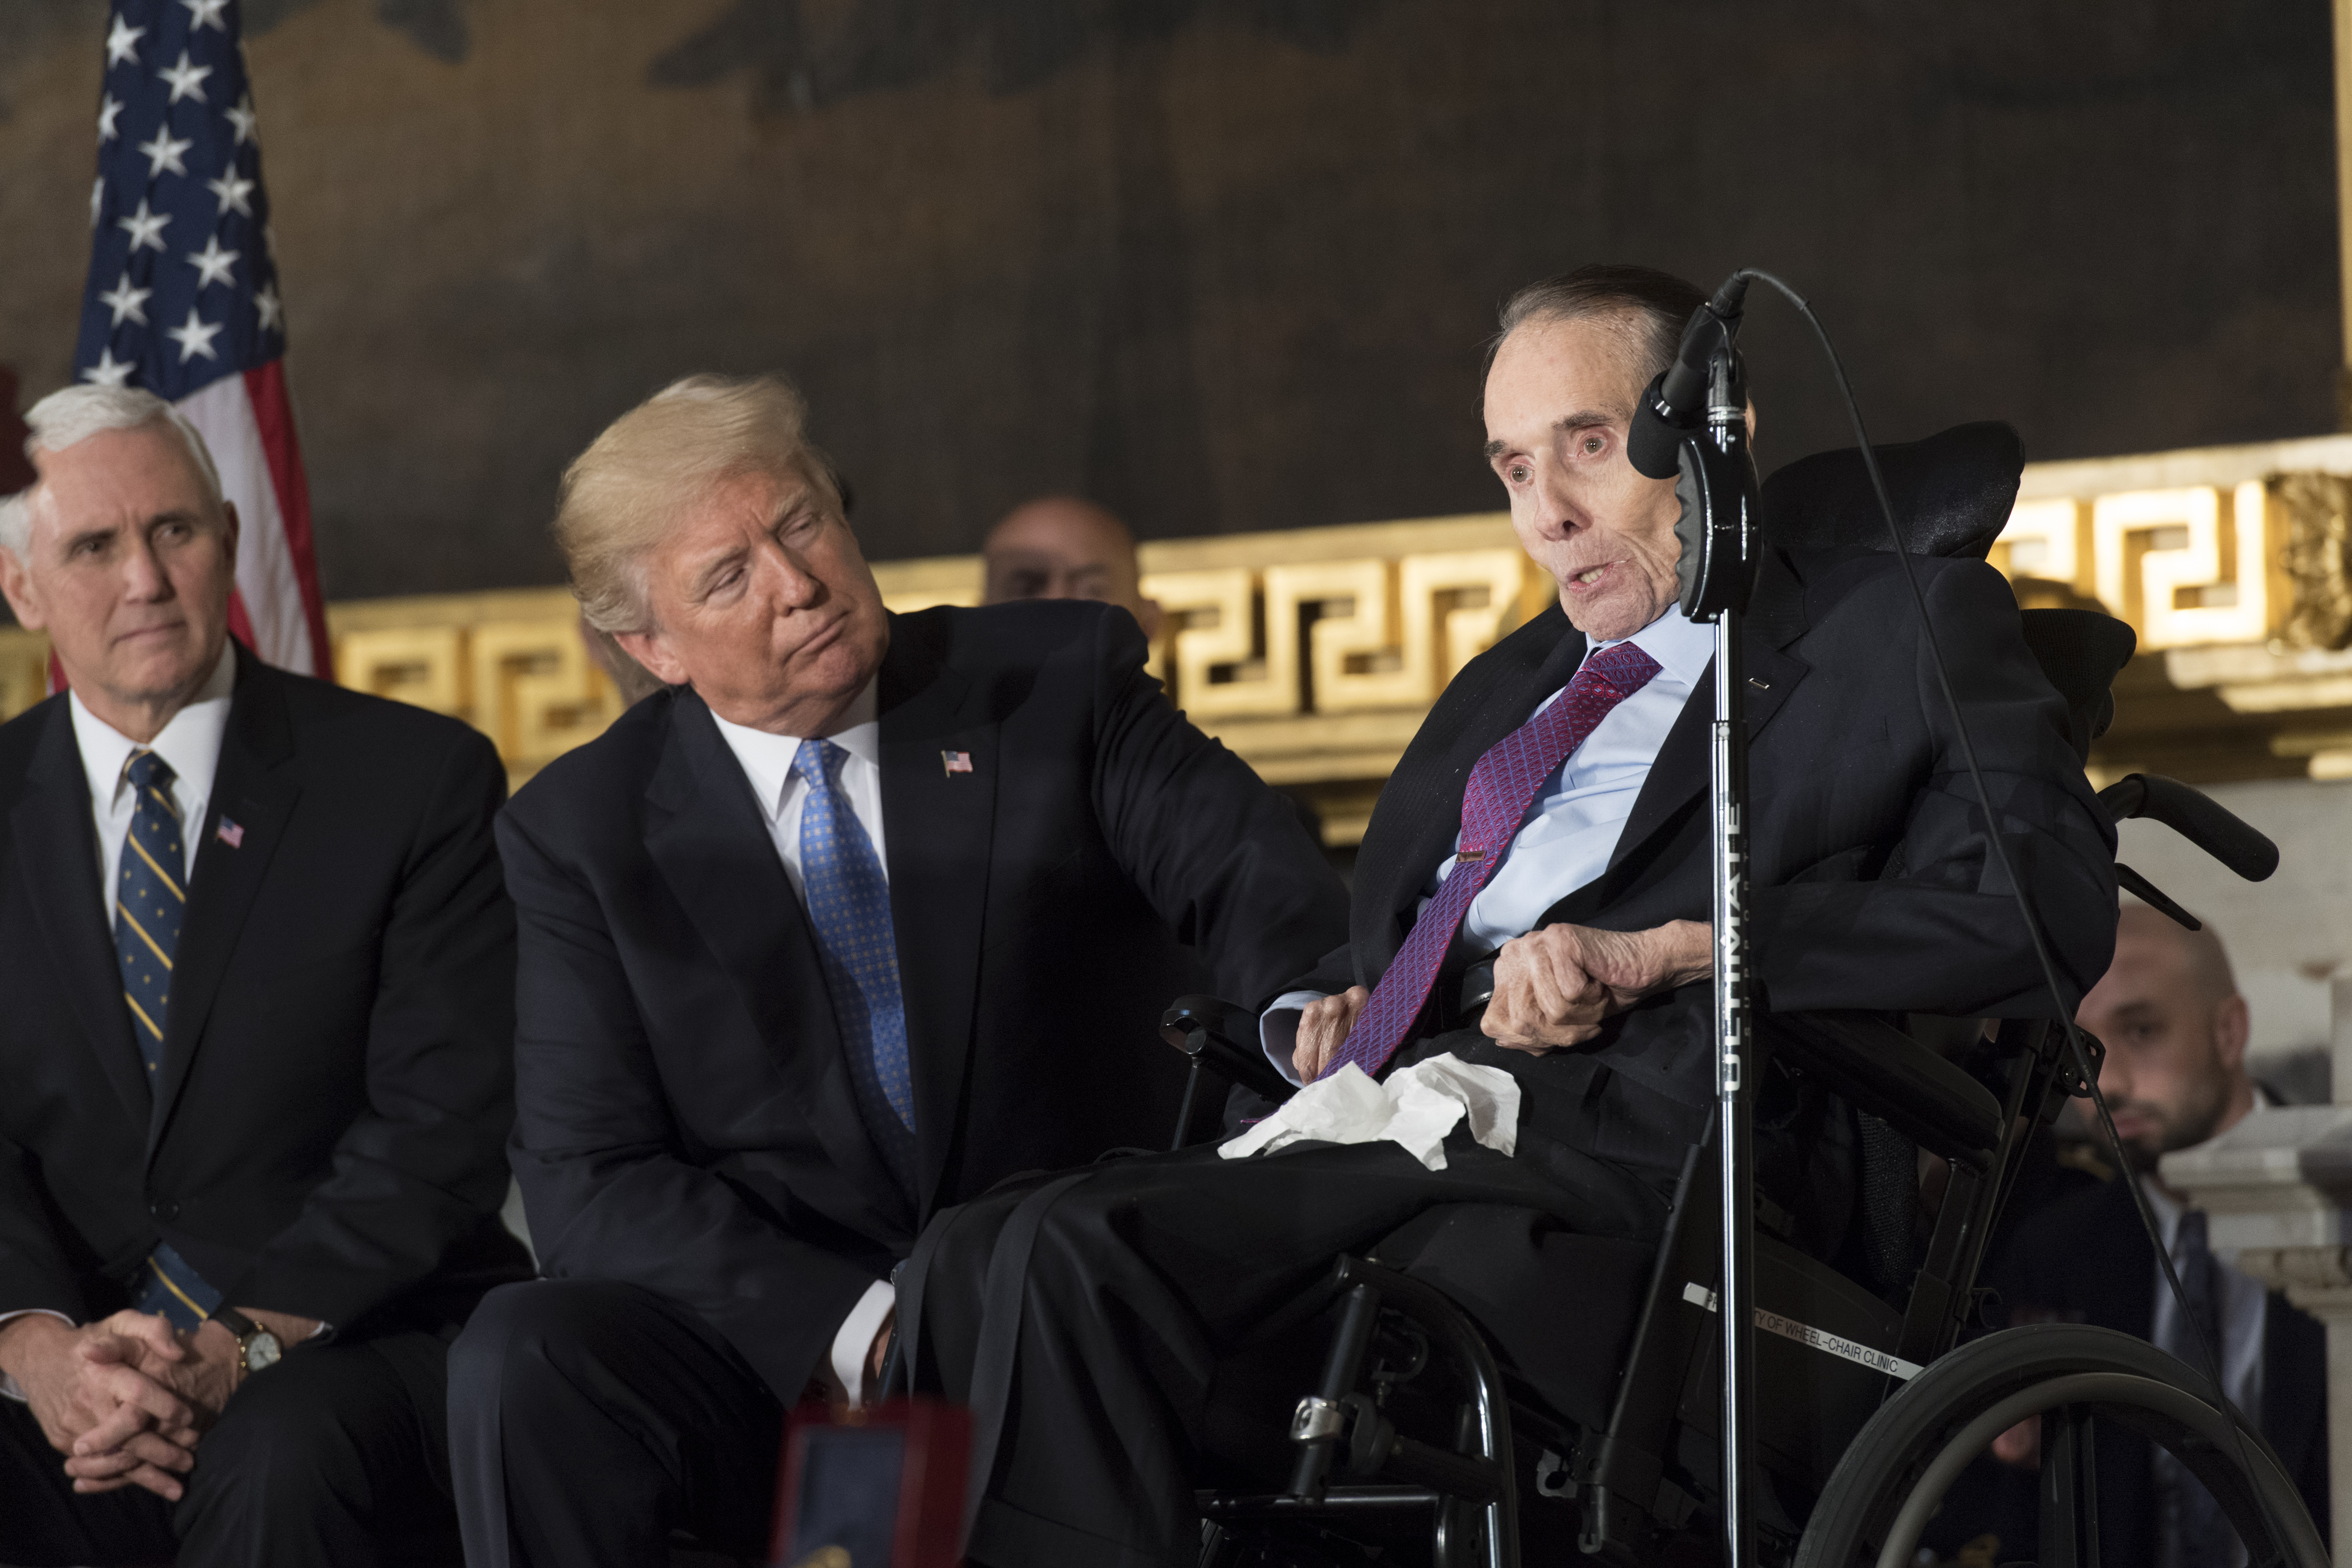 Senator Bob Dole Speaks at CGM ceremony